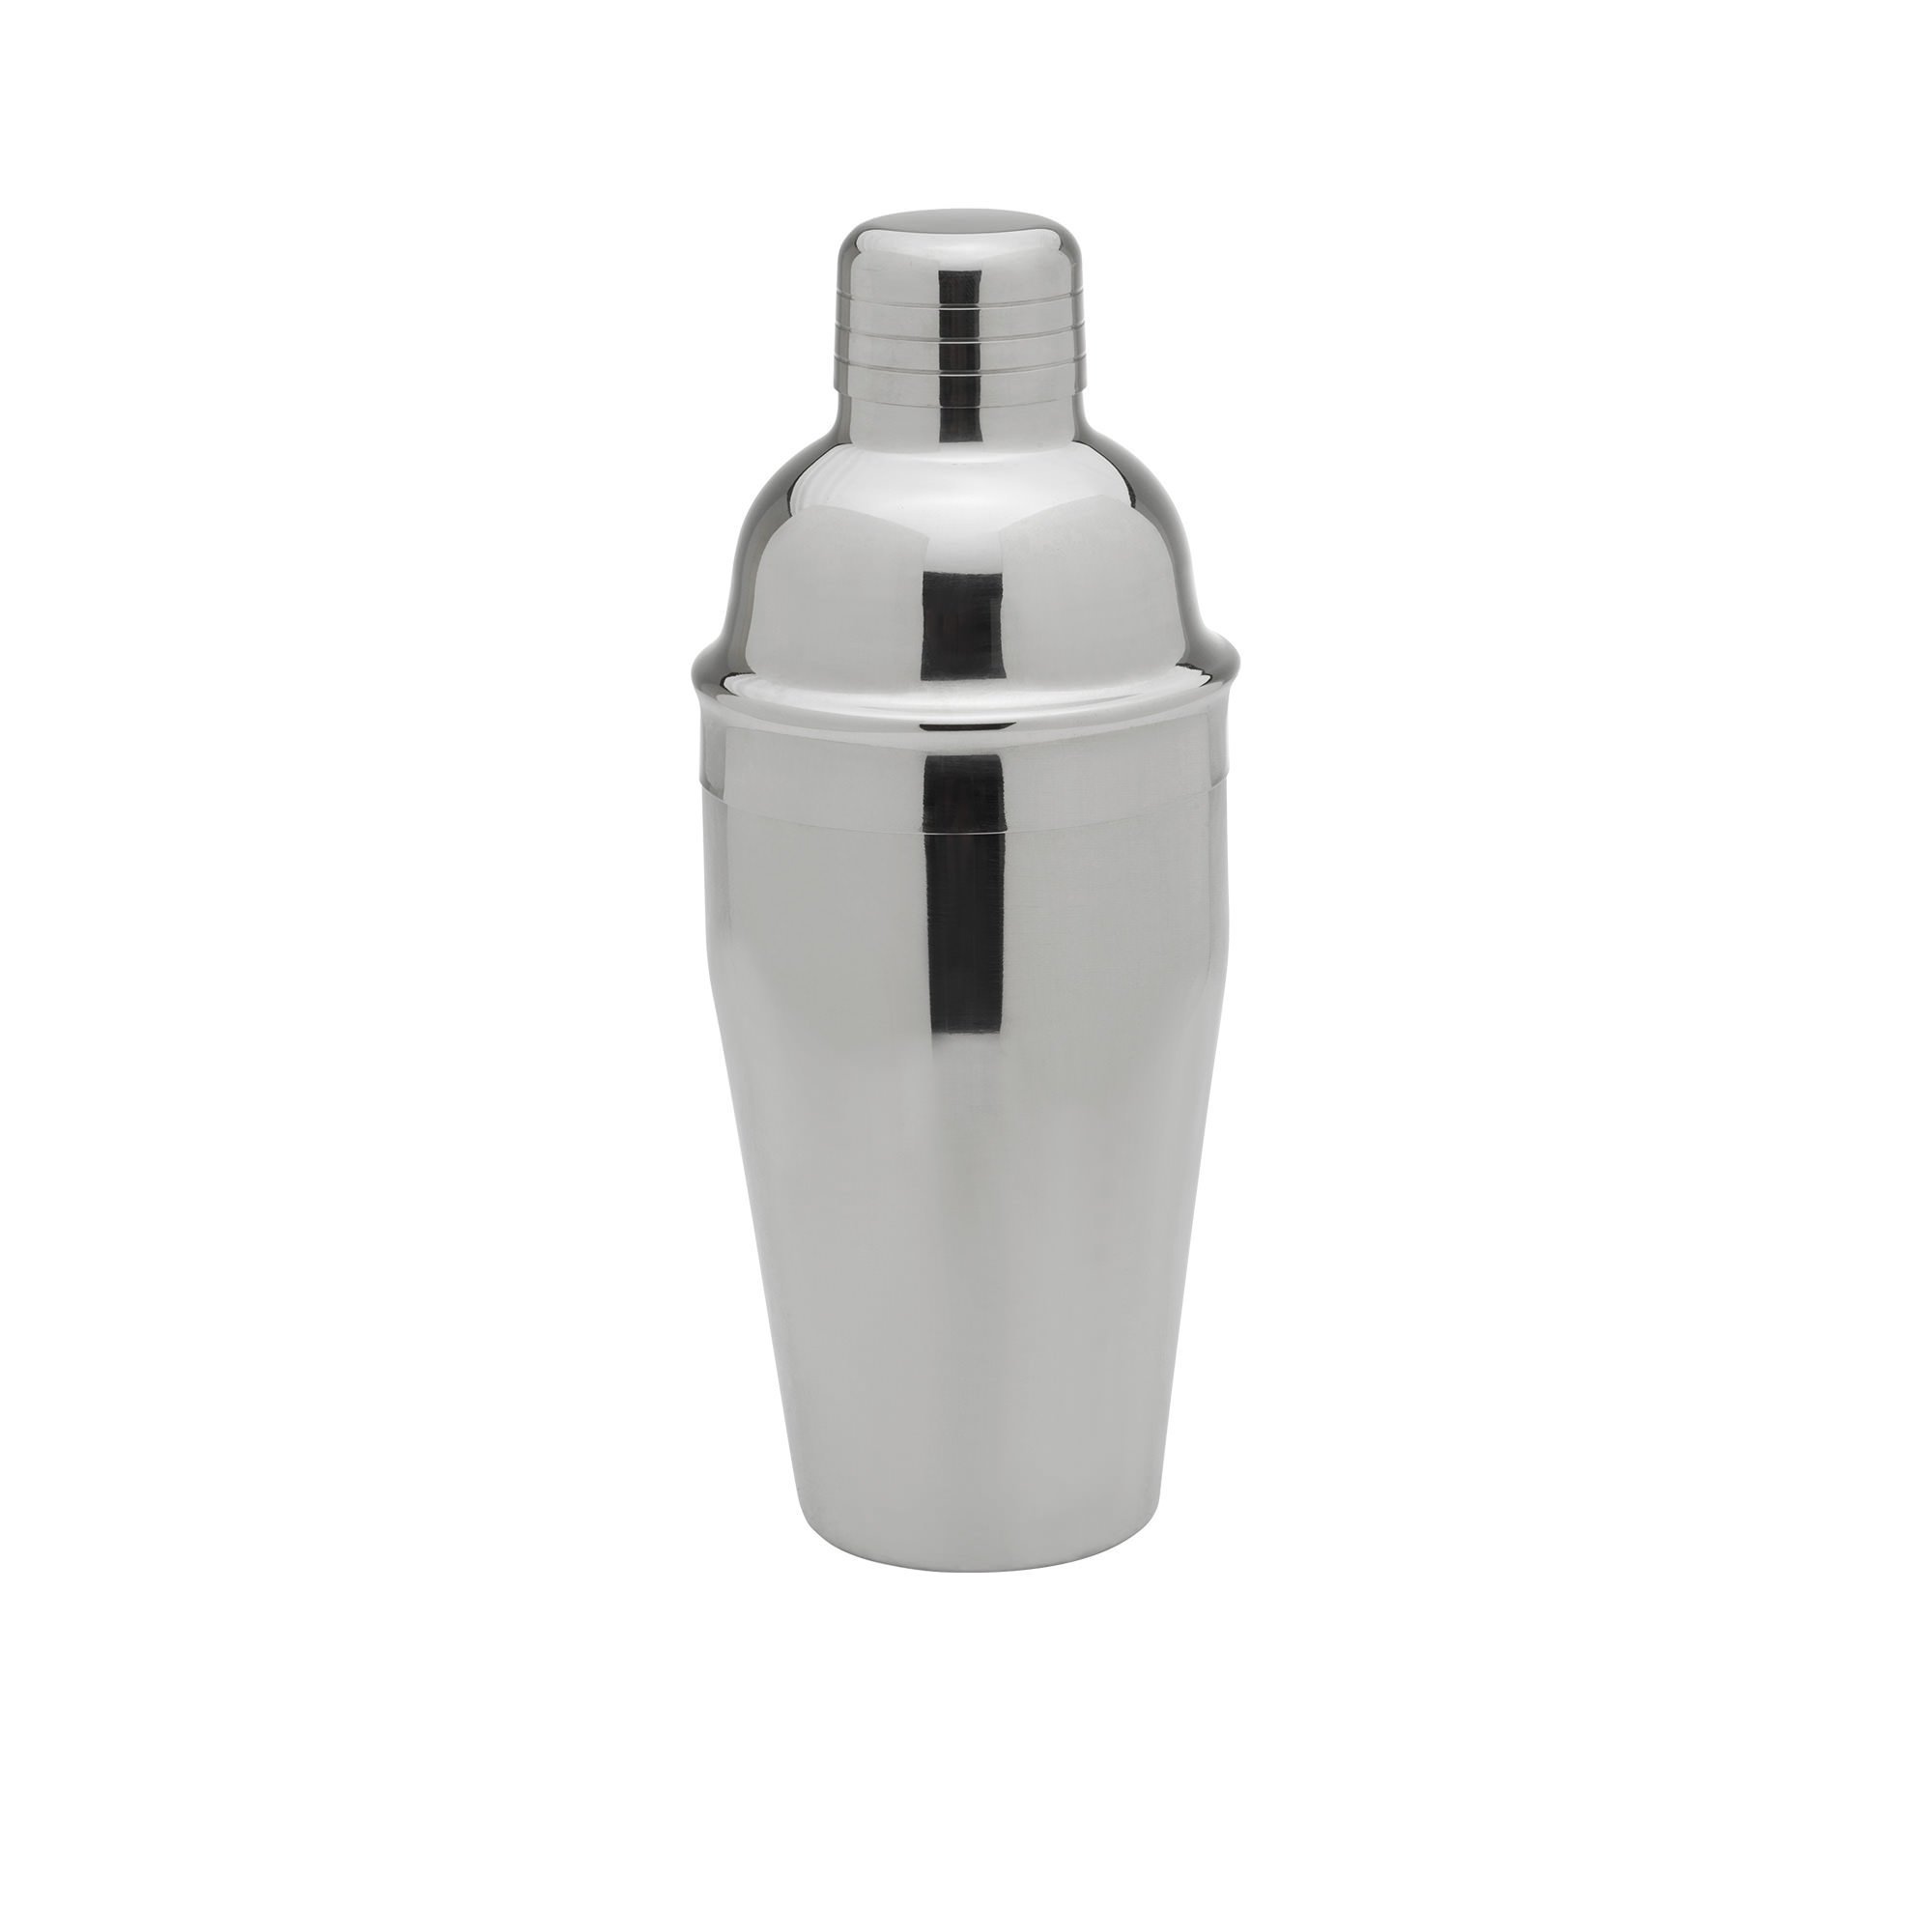 Winex 3pc Stainless Steel Cocktail Shaker Set 500ml